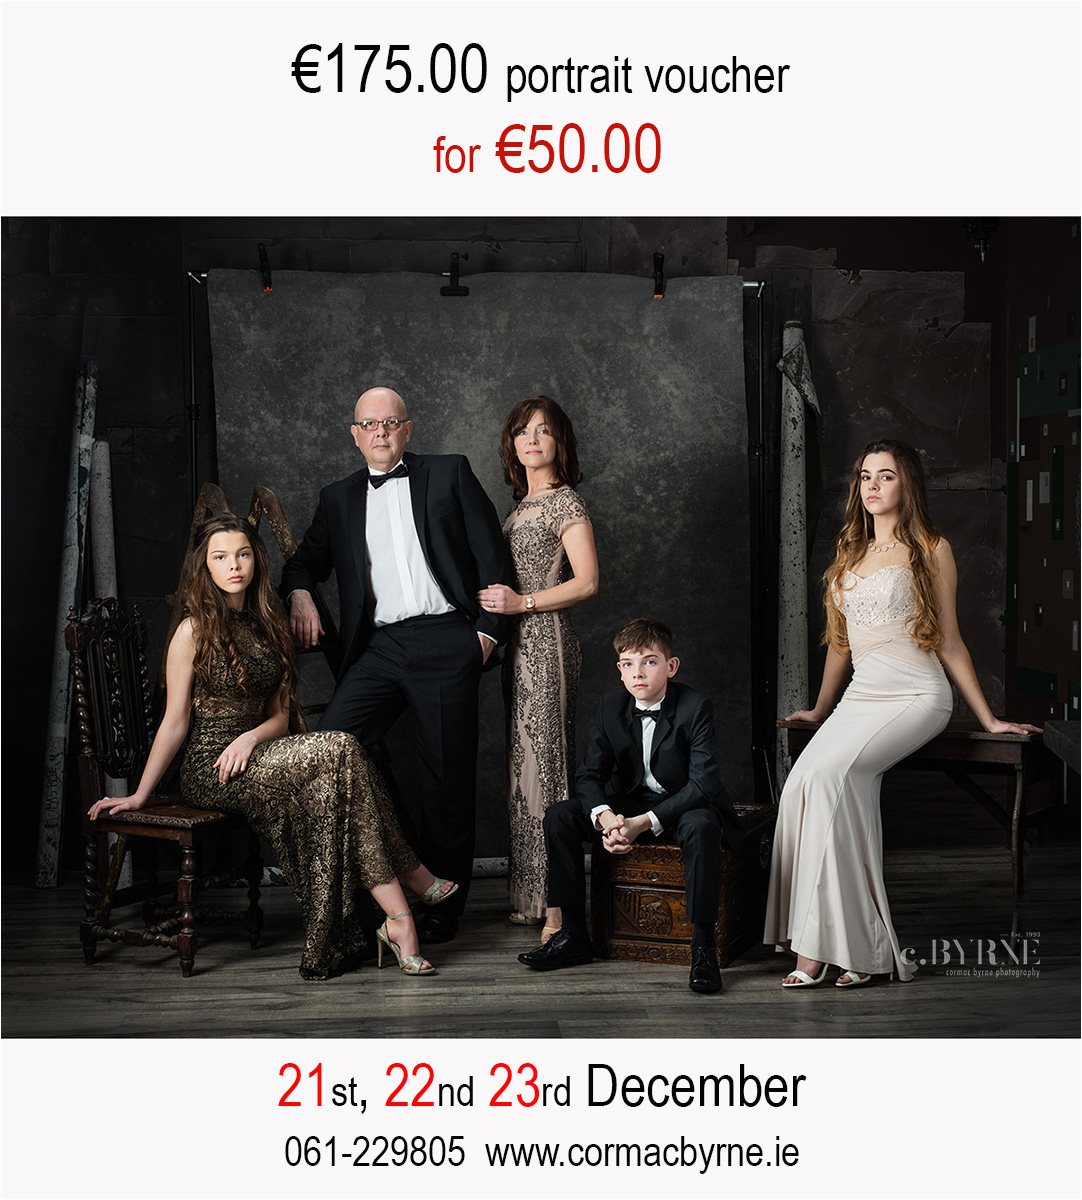 For three days only, gift voucher special rate.